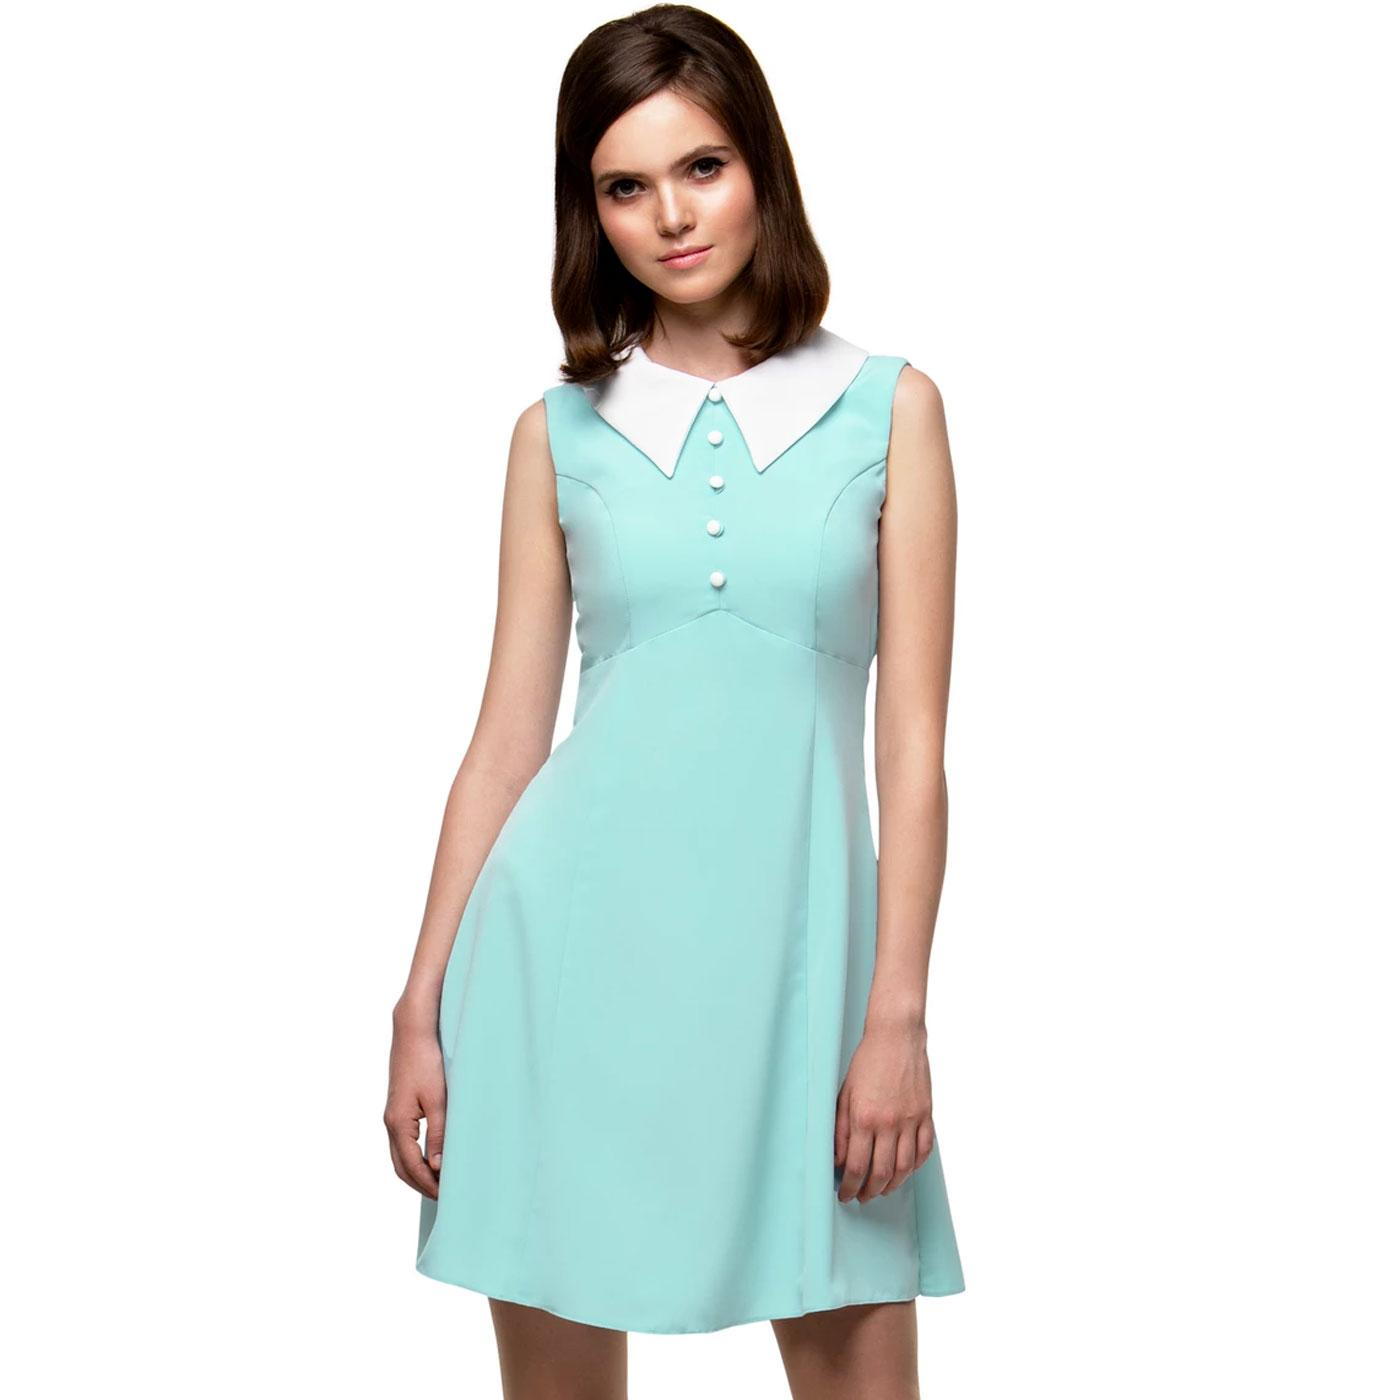 MARMALADE Retro 1960s Mod Big Collar Dress (Mint)